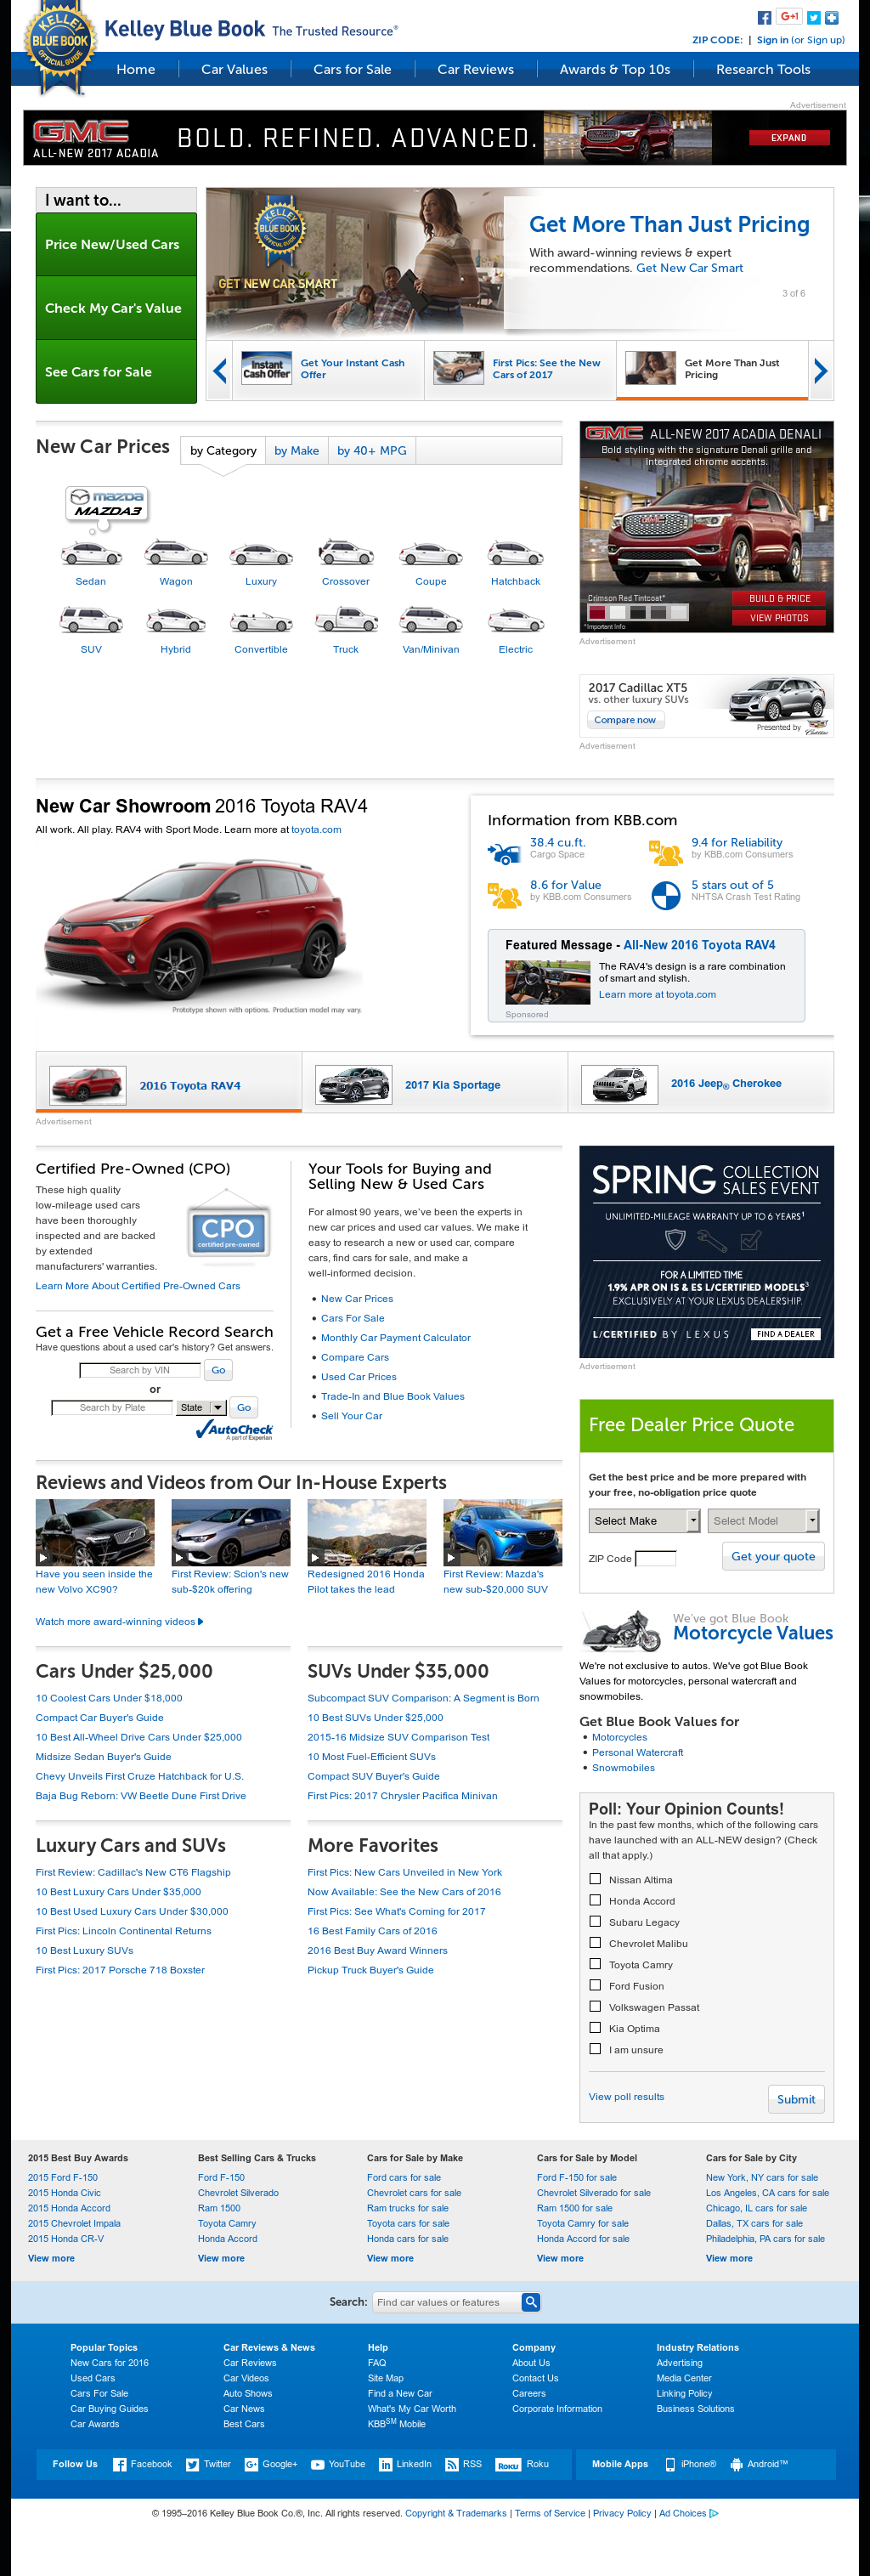 Kelley Blue Book Competitors, Revenue and Employees - Owler Company Profile